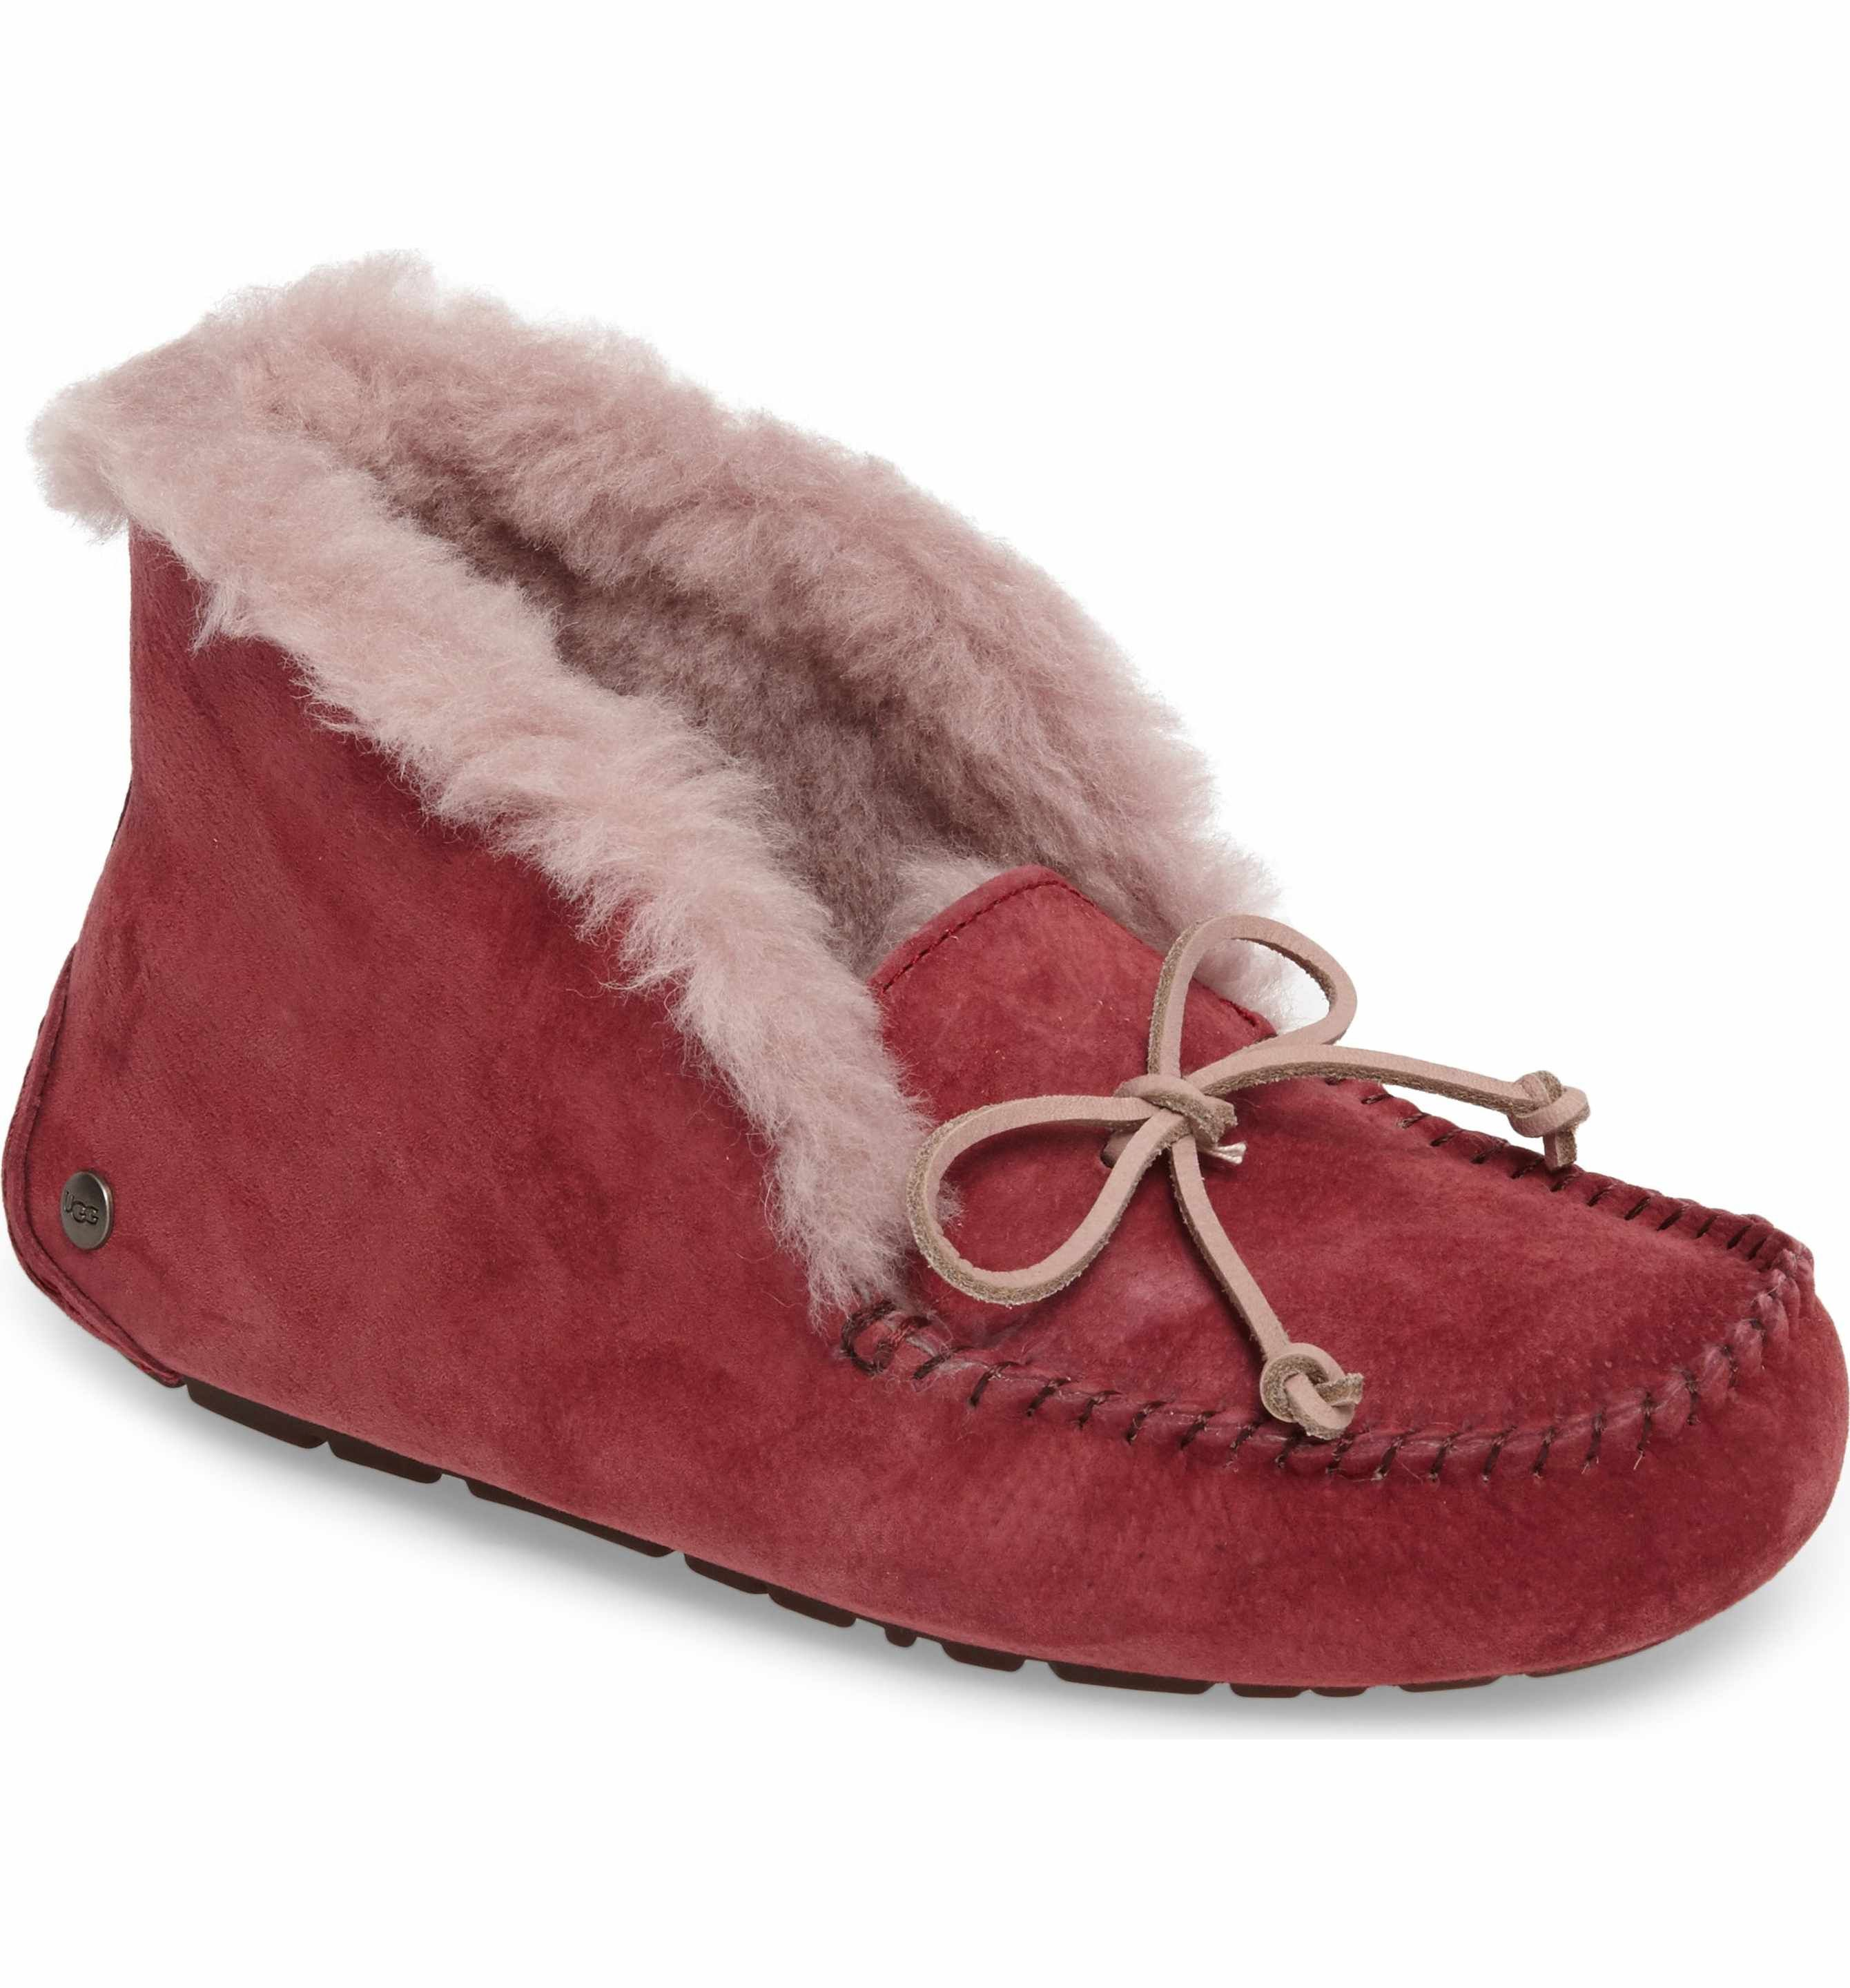 24cc9a6dcb4 UGG® UGGpure™ Alena Suede Slipper Bootie Size 8 1/2 or 9 if whole ...